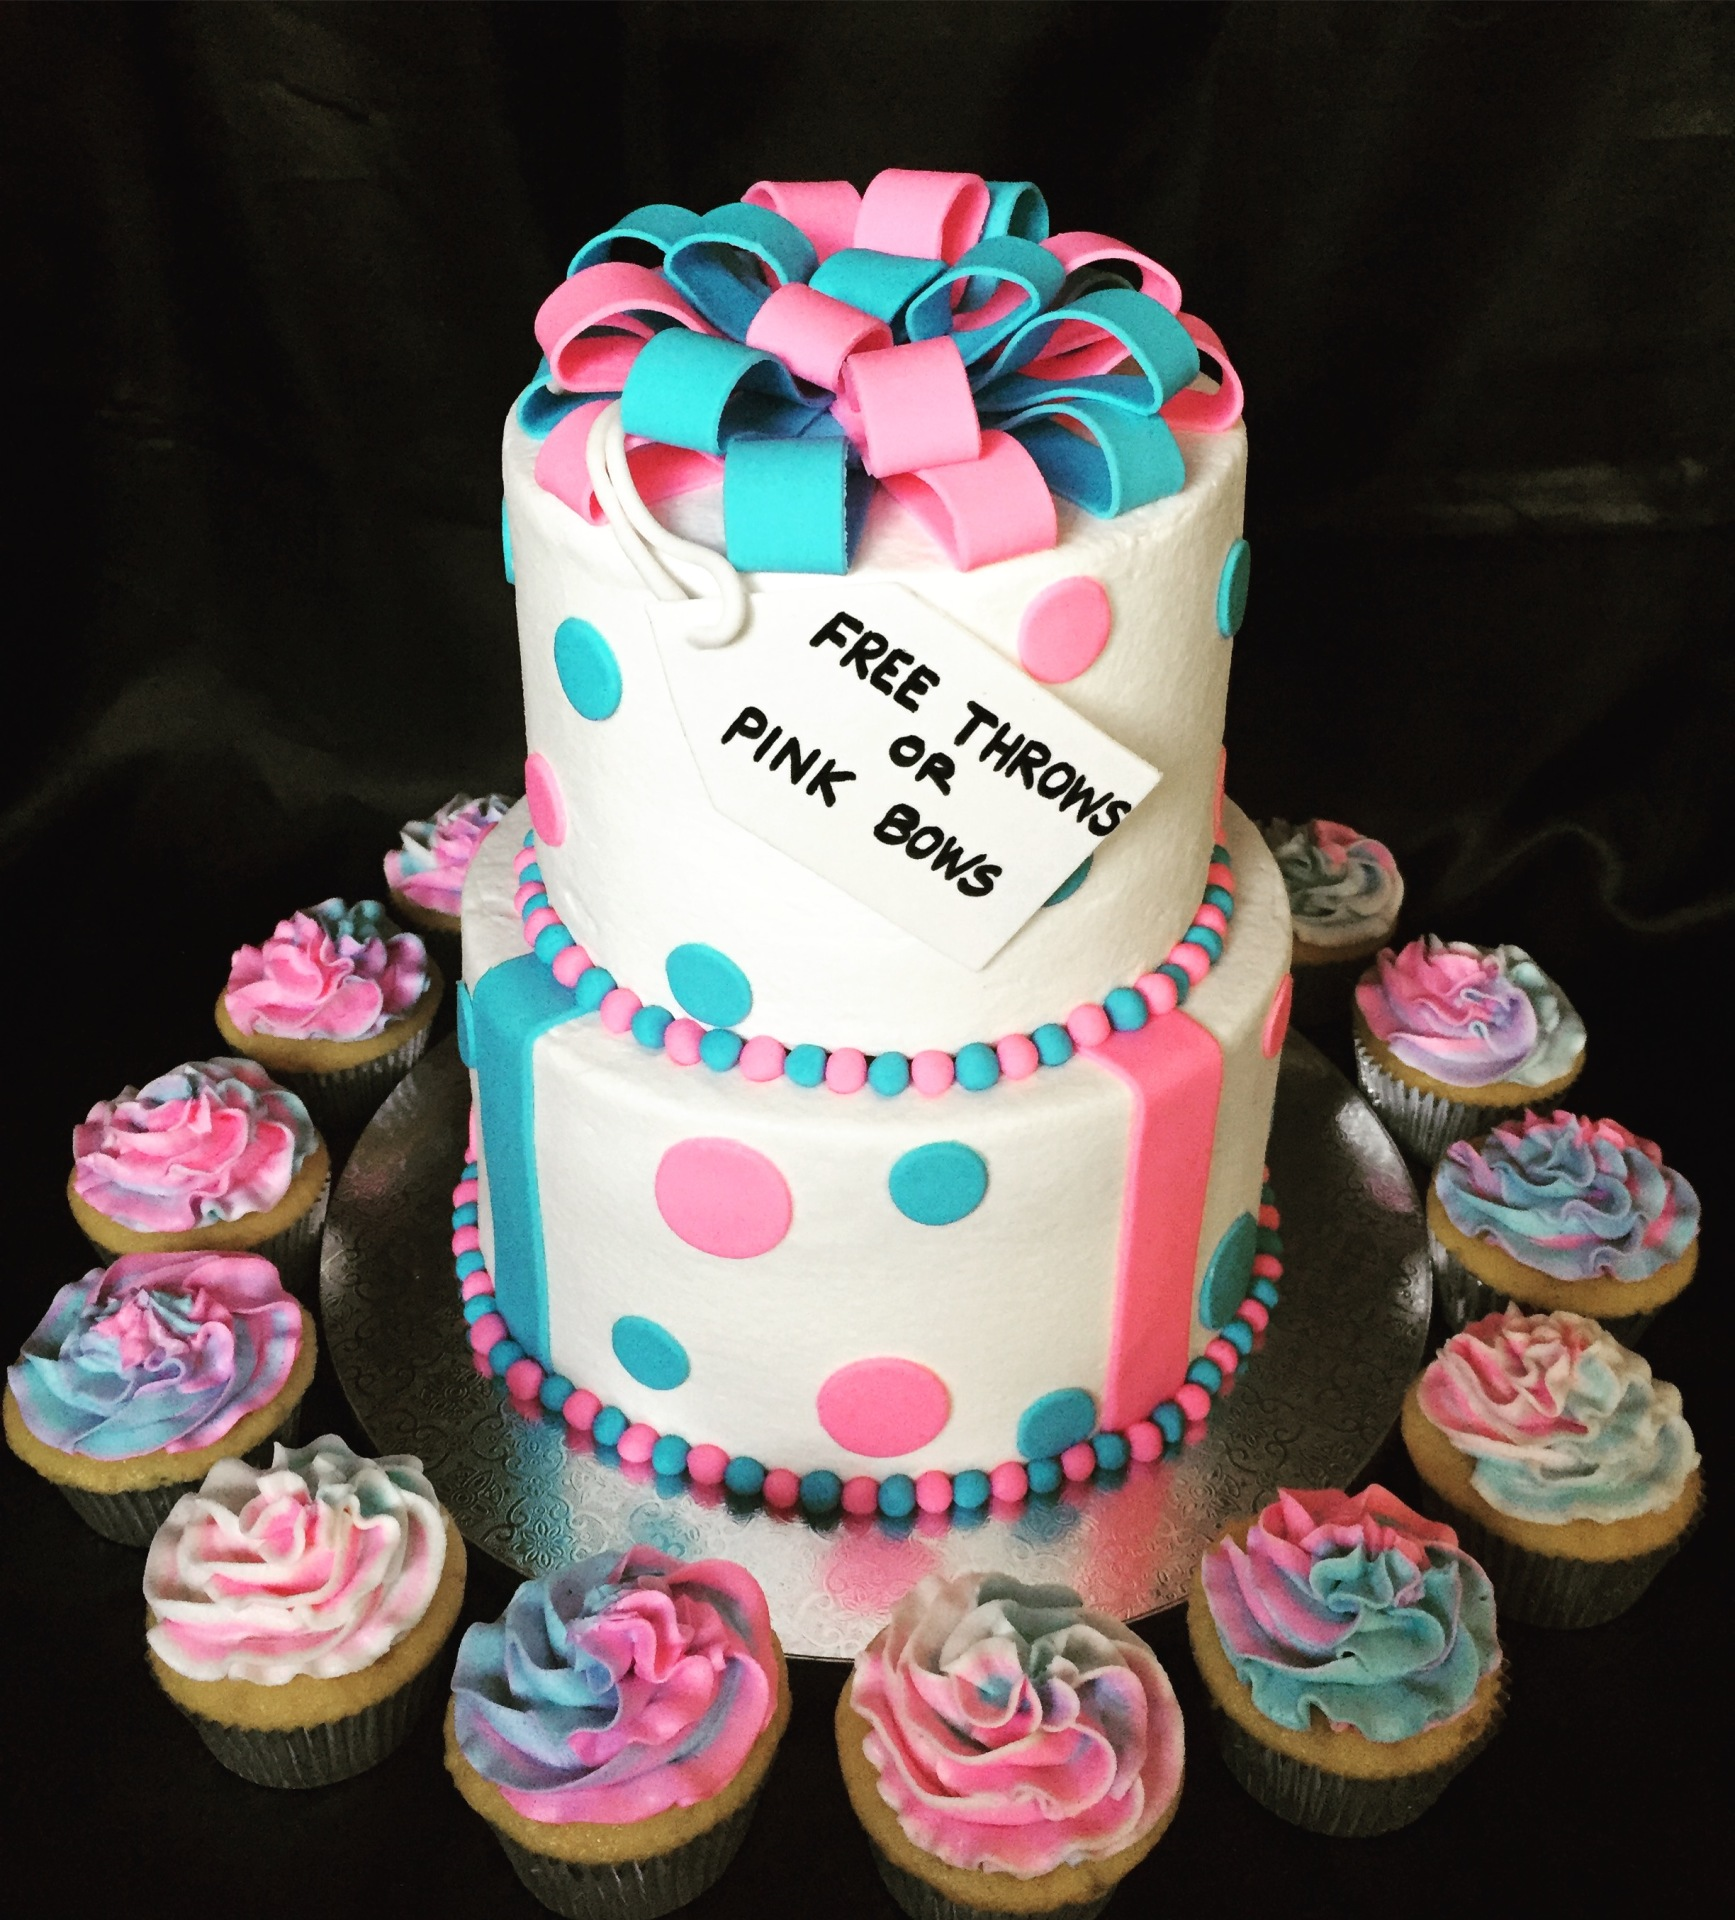 Gender reveal tiered cake and cupcakes